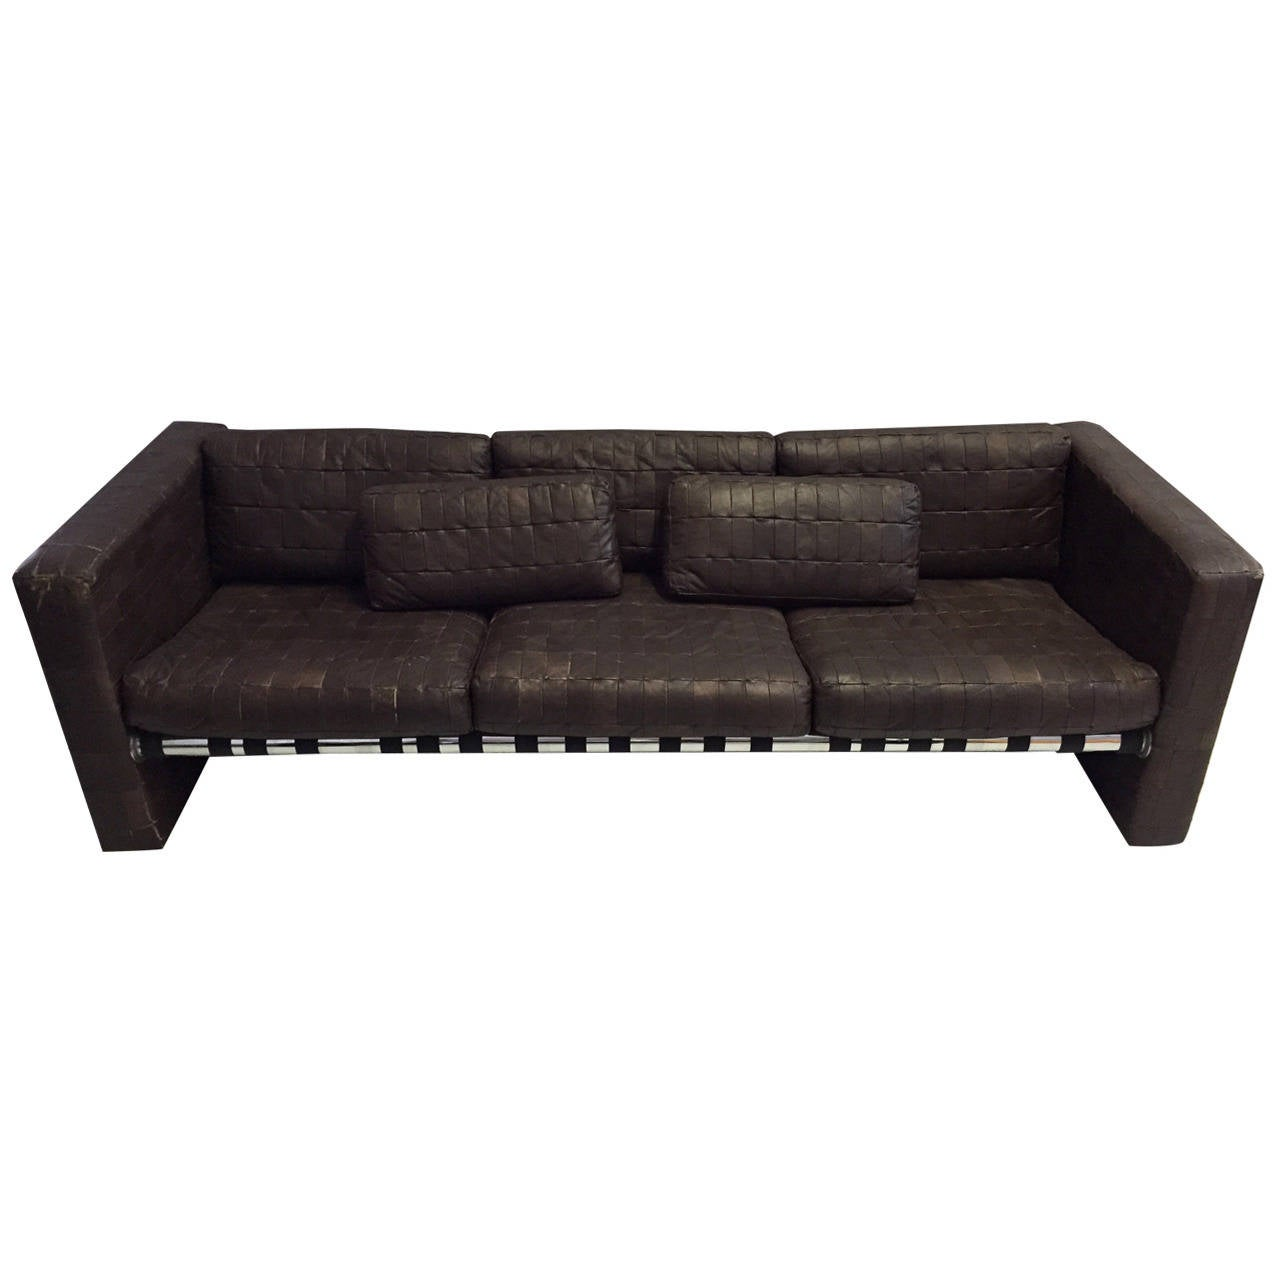 de sede leather patchwork sofa for sale at 1stdibs. Black Bedroom Furniture Sets. Home Design Ideas